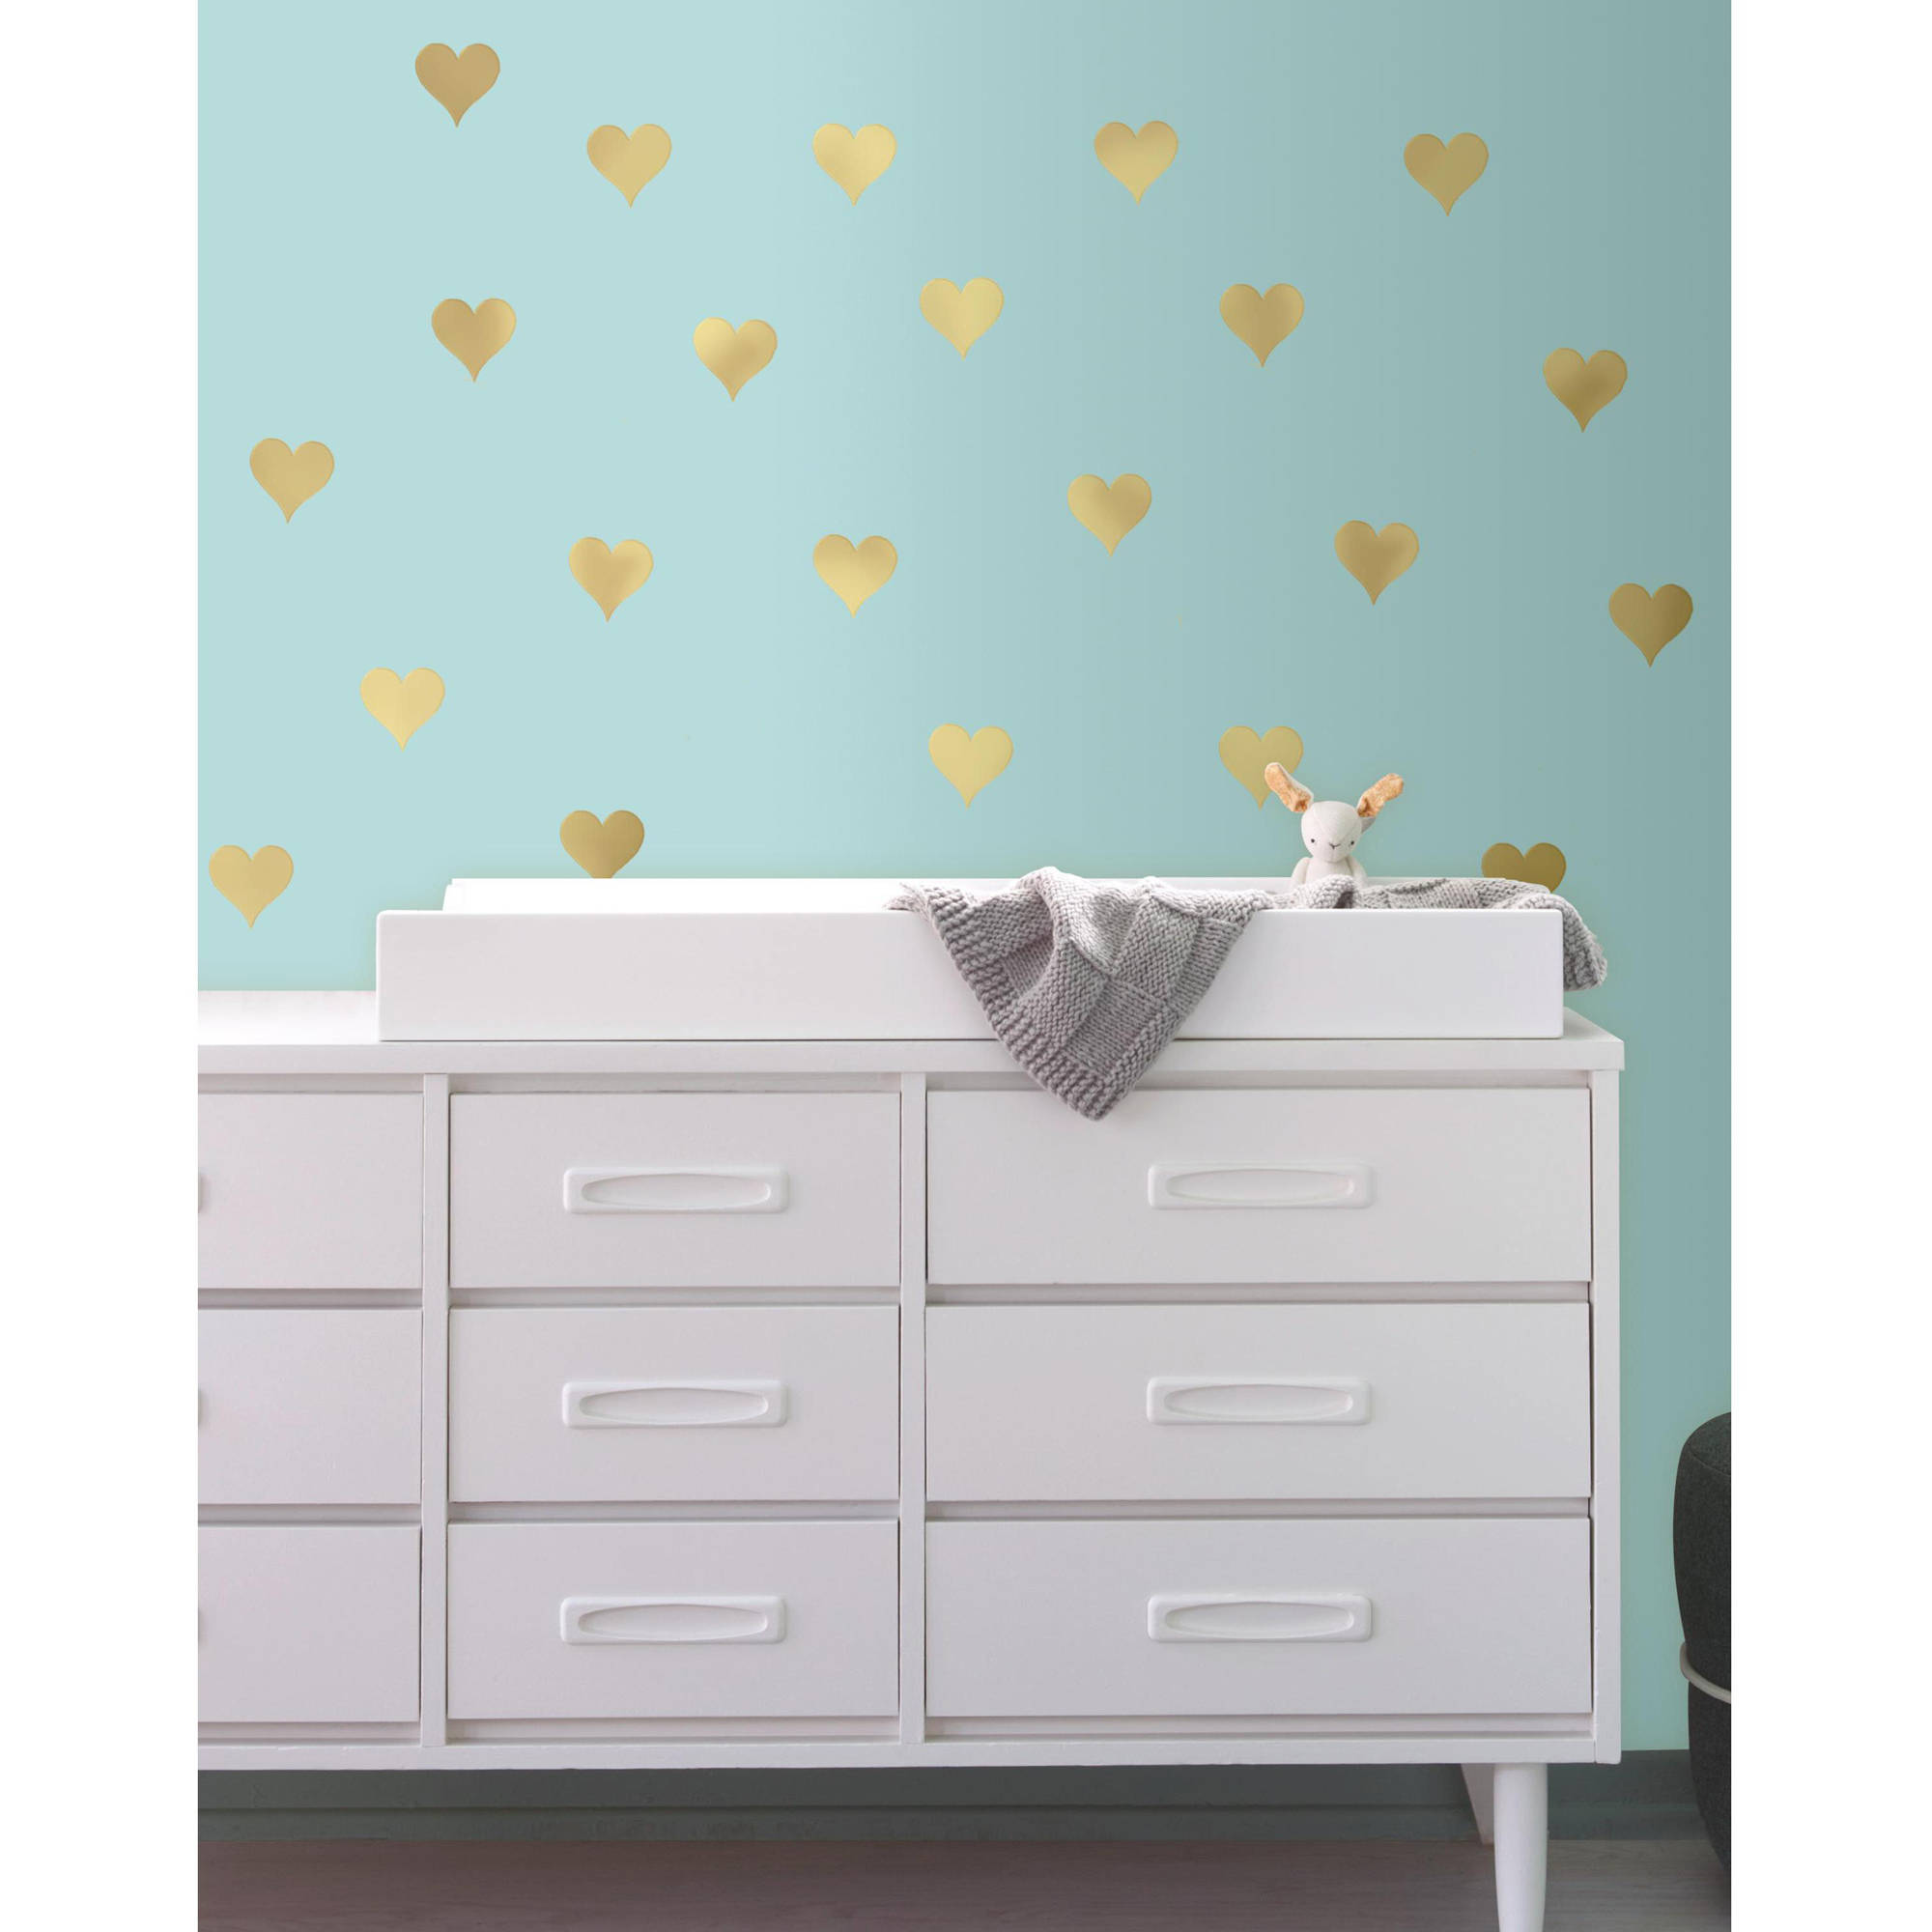 RoomMates Gold Heart Peel and Stick Wall Decals